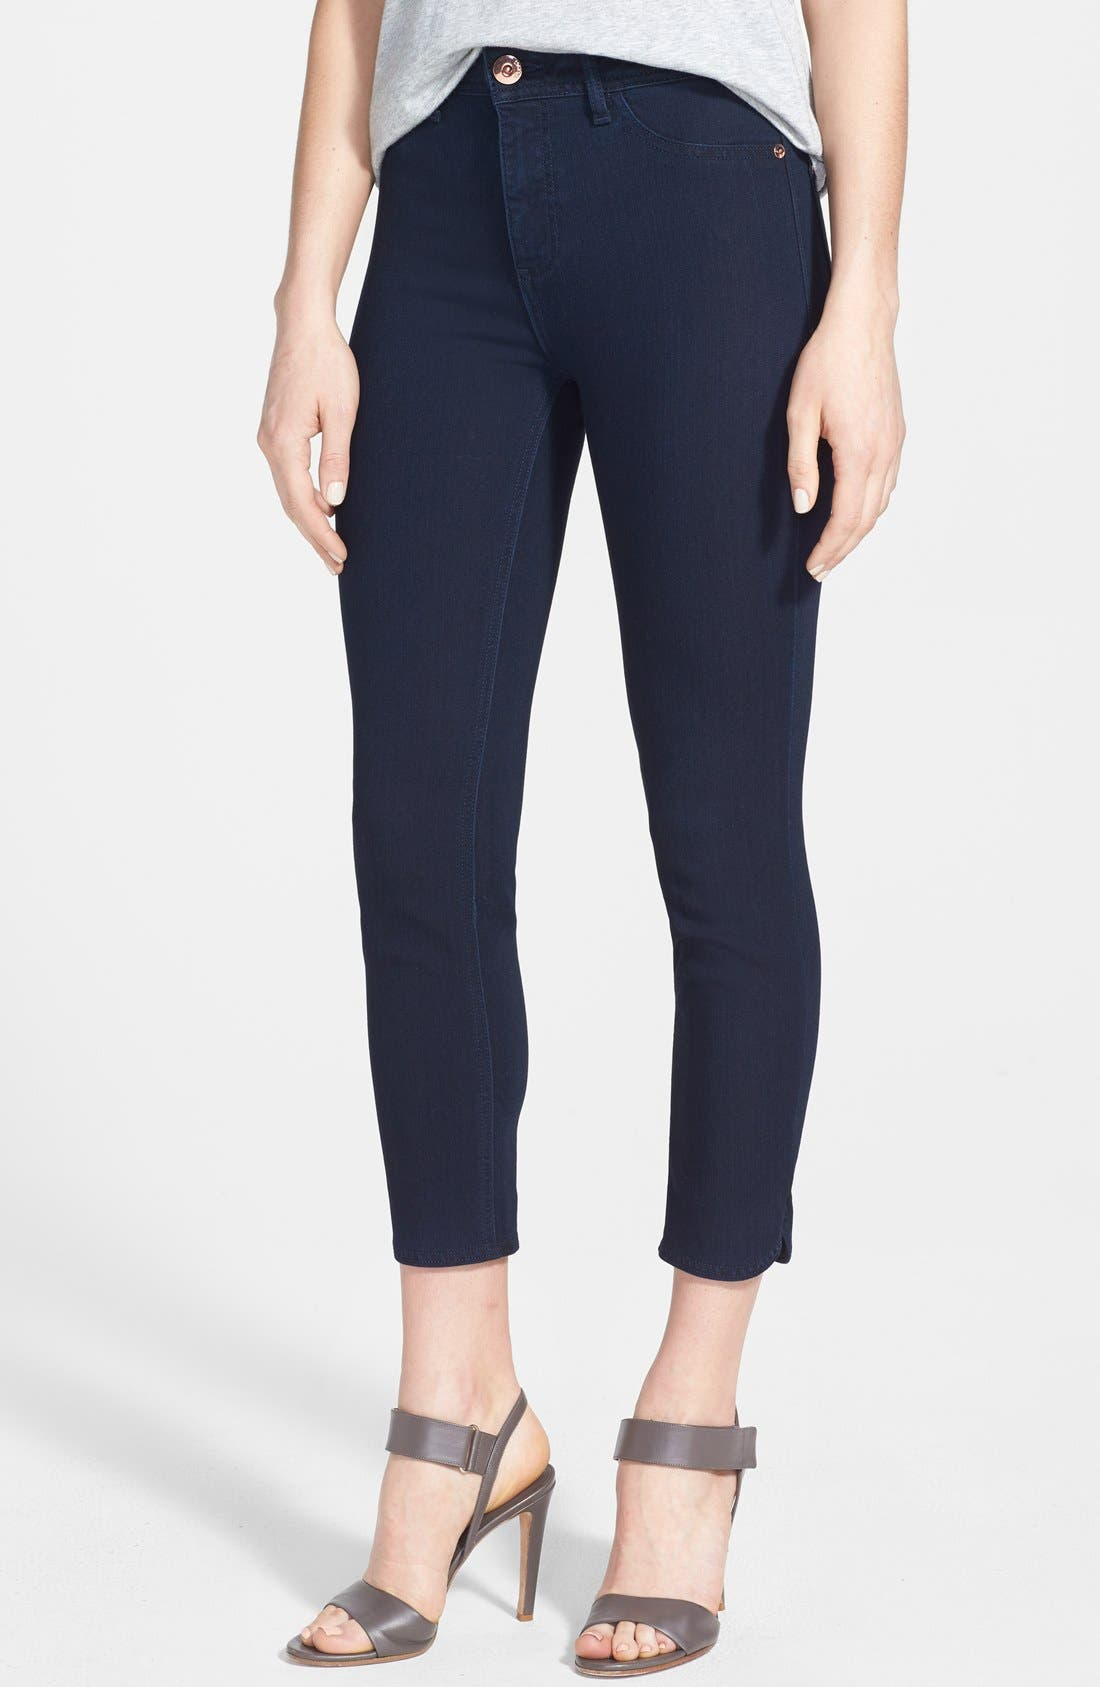 Main Image - DL1961 'Bardot High Rise' Crop Jeans (Flat Iron)